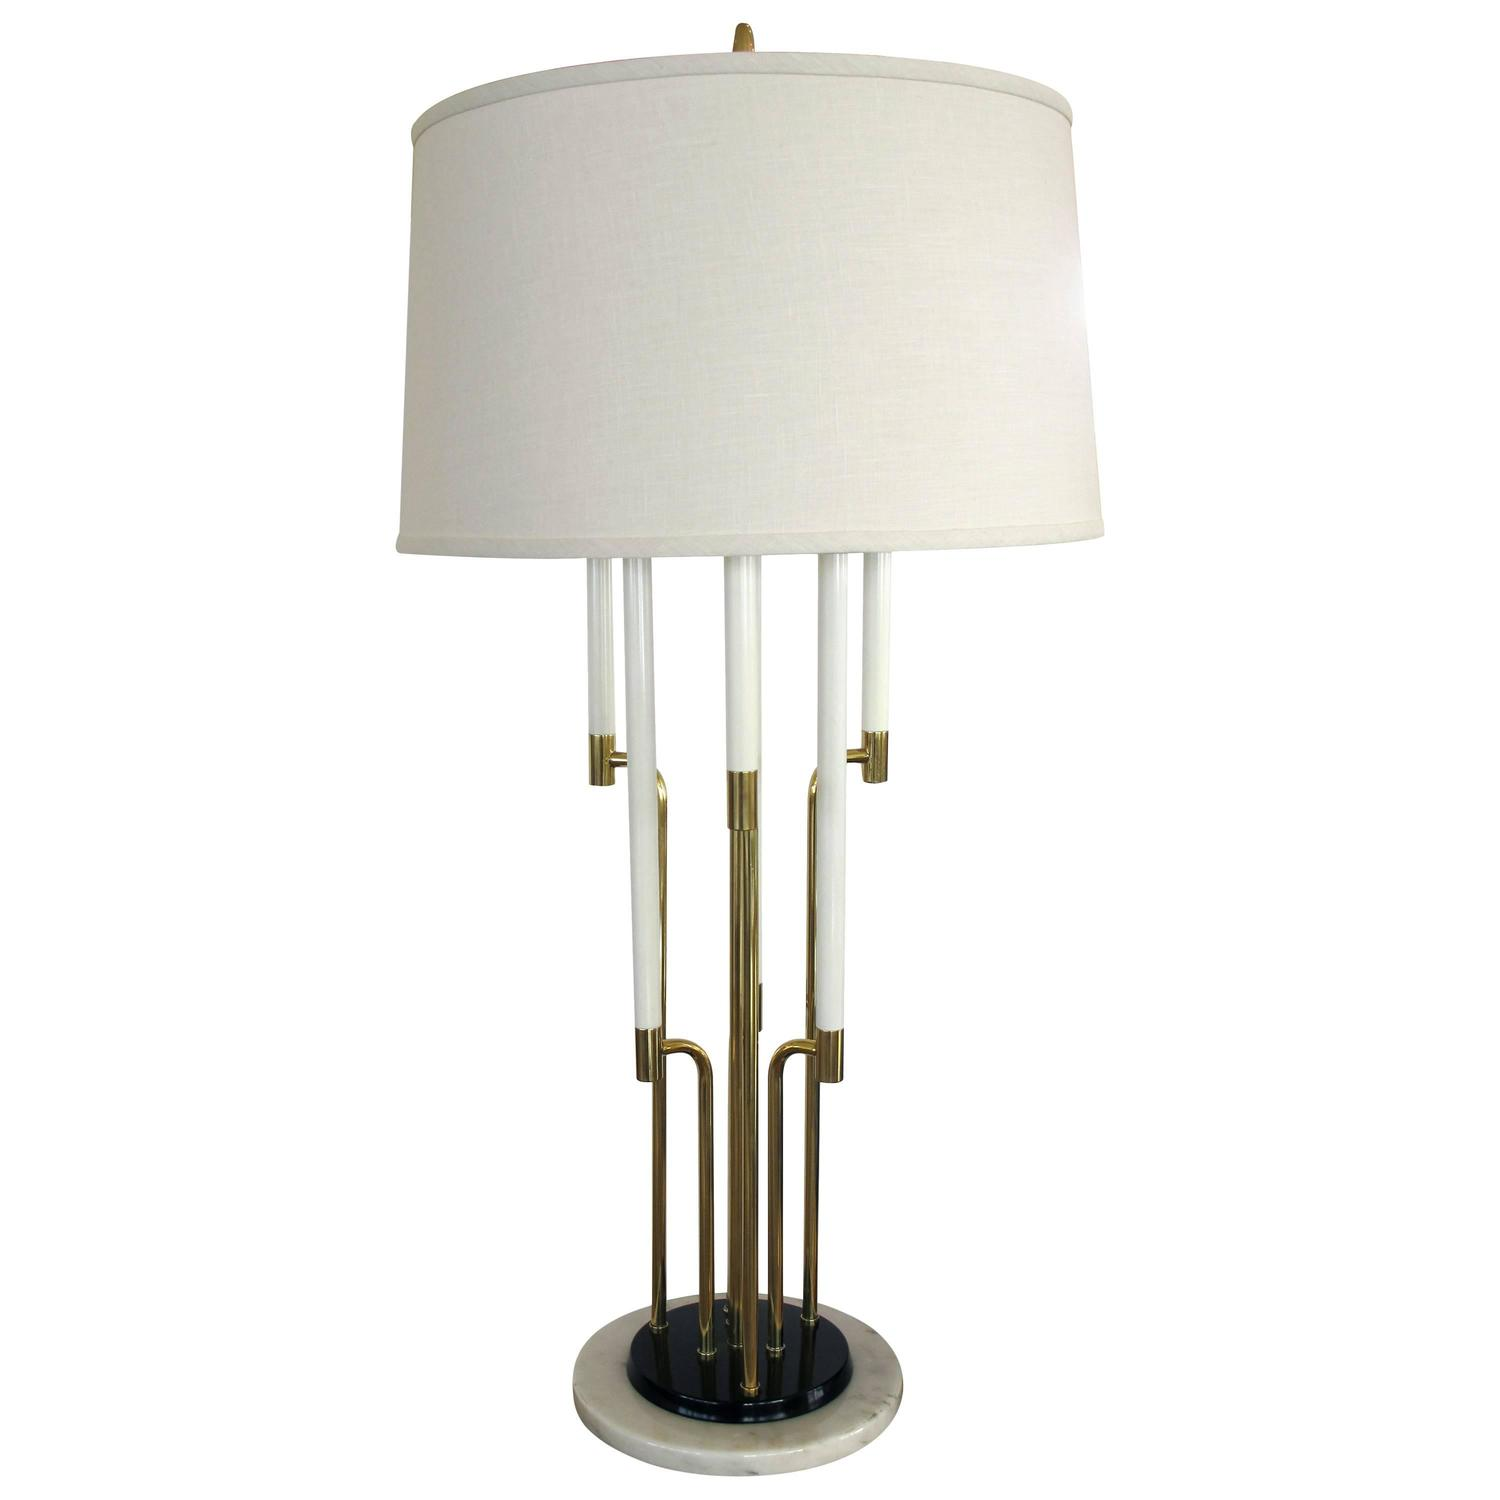 1950s six light brass table lamp with marble base for sale at 1stdibs. Black Bedroom Furniture Sets. Home Design Ideas